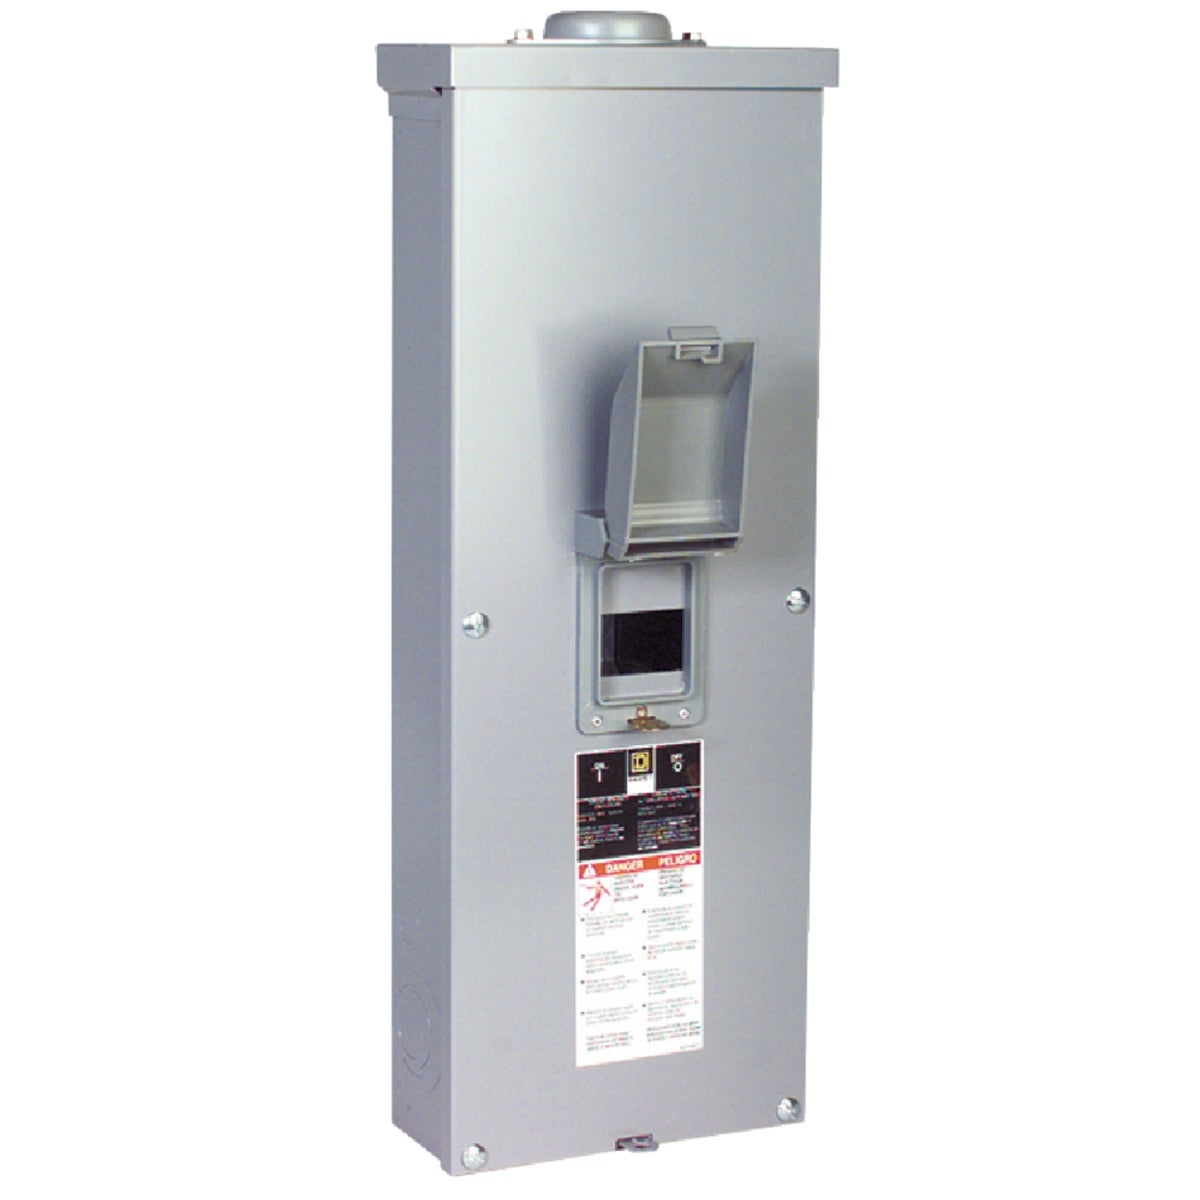 200A ENCLOSED BREAKER - QOM2E2200NRB by Square D Co